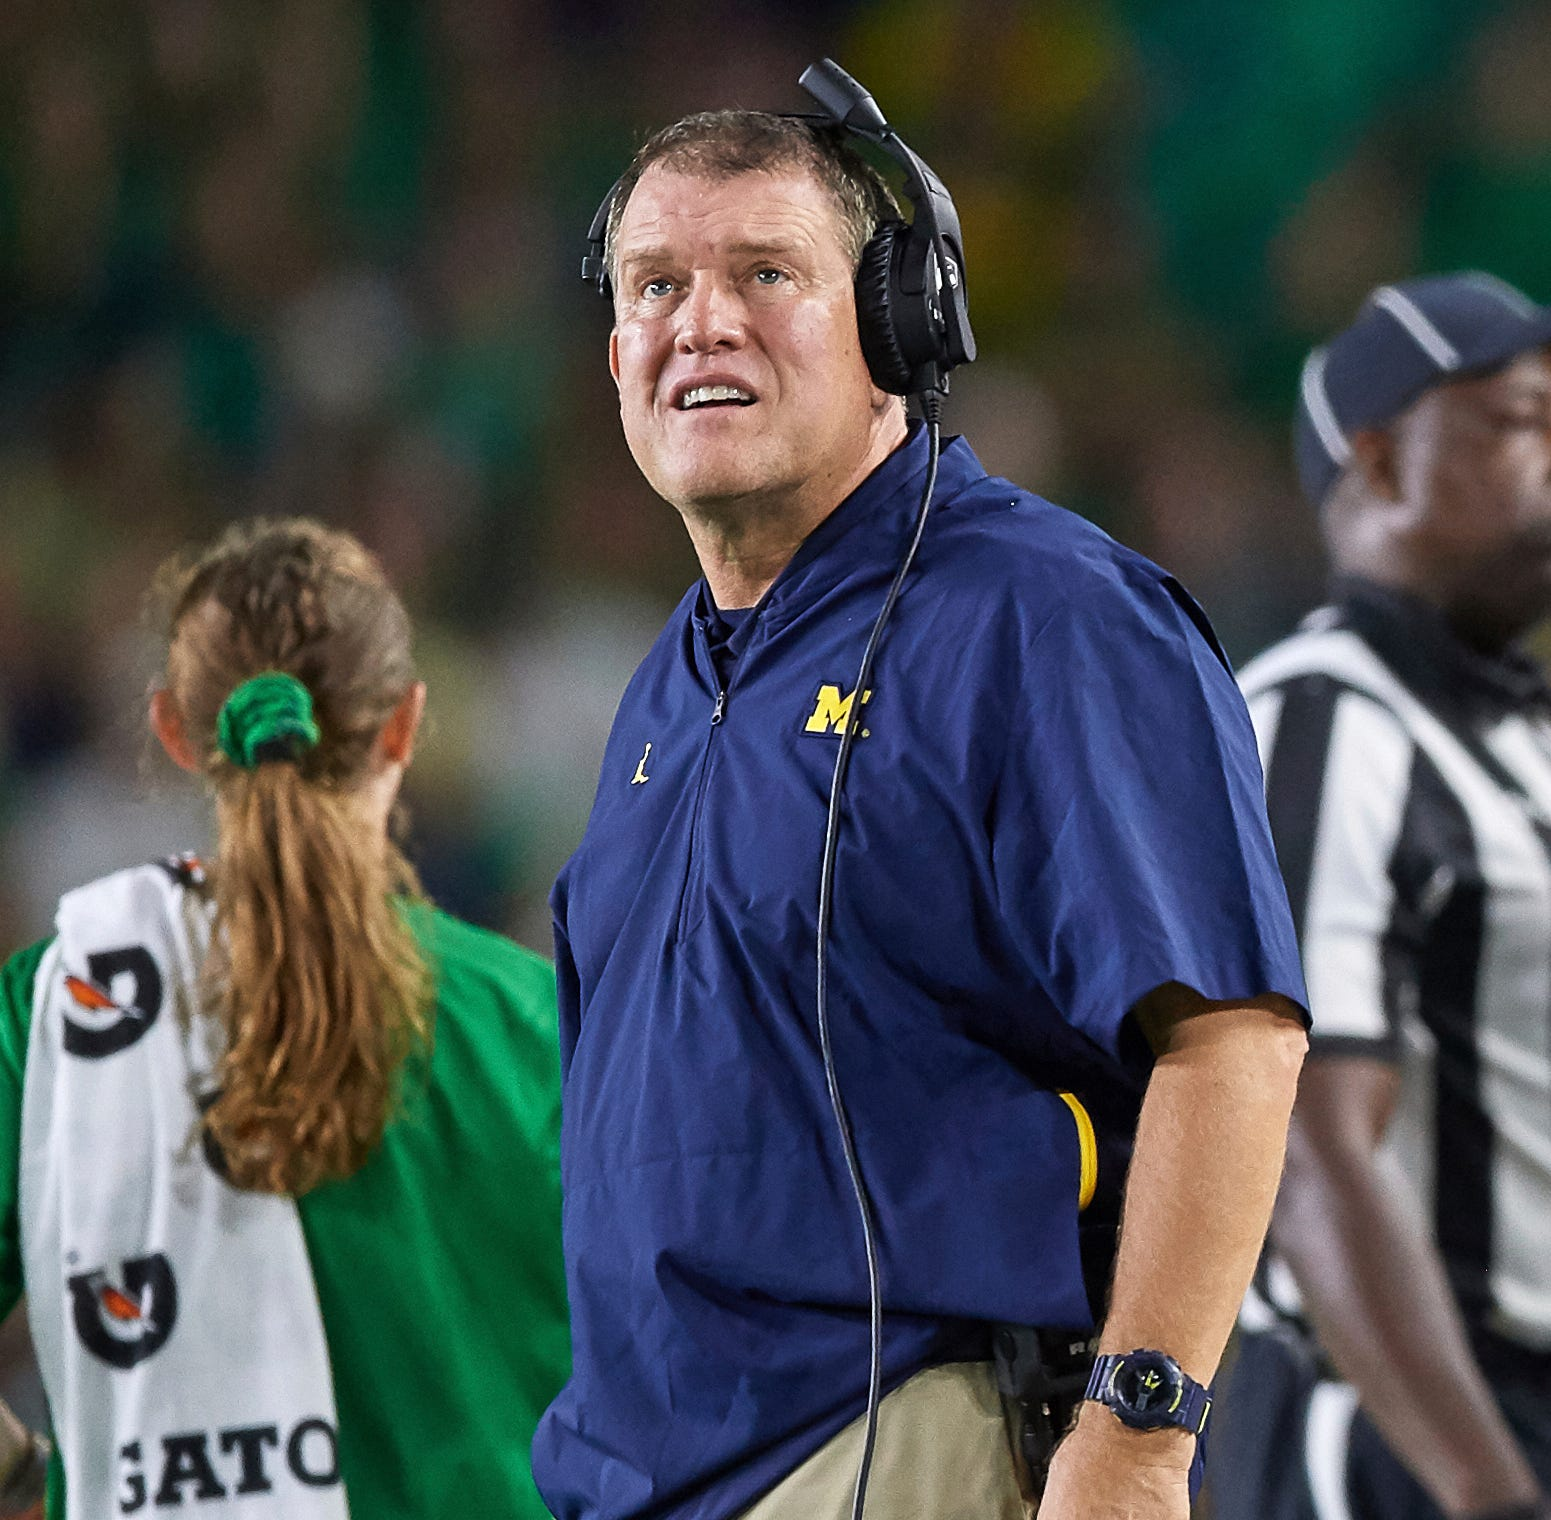 Michigan O-line improves under Ed Warinner's tutelage